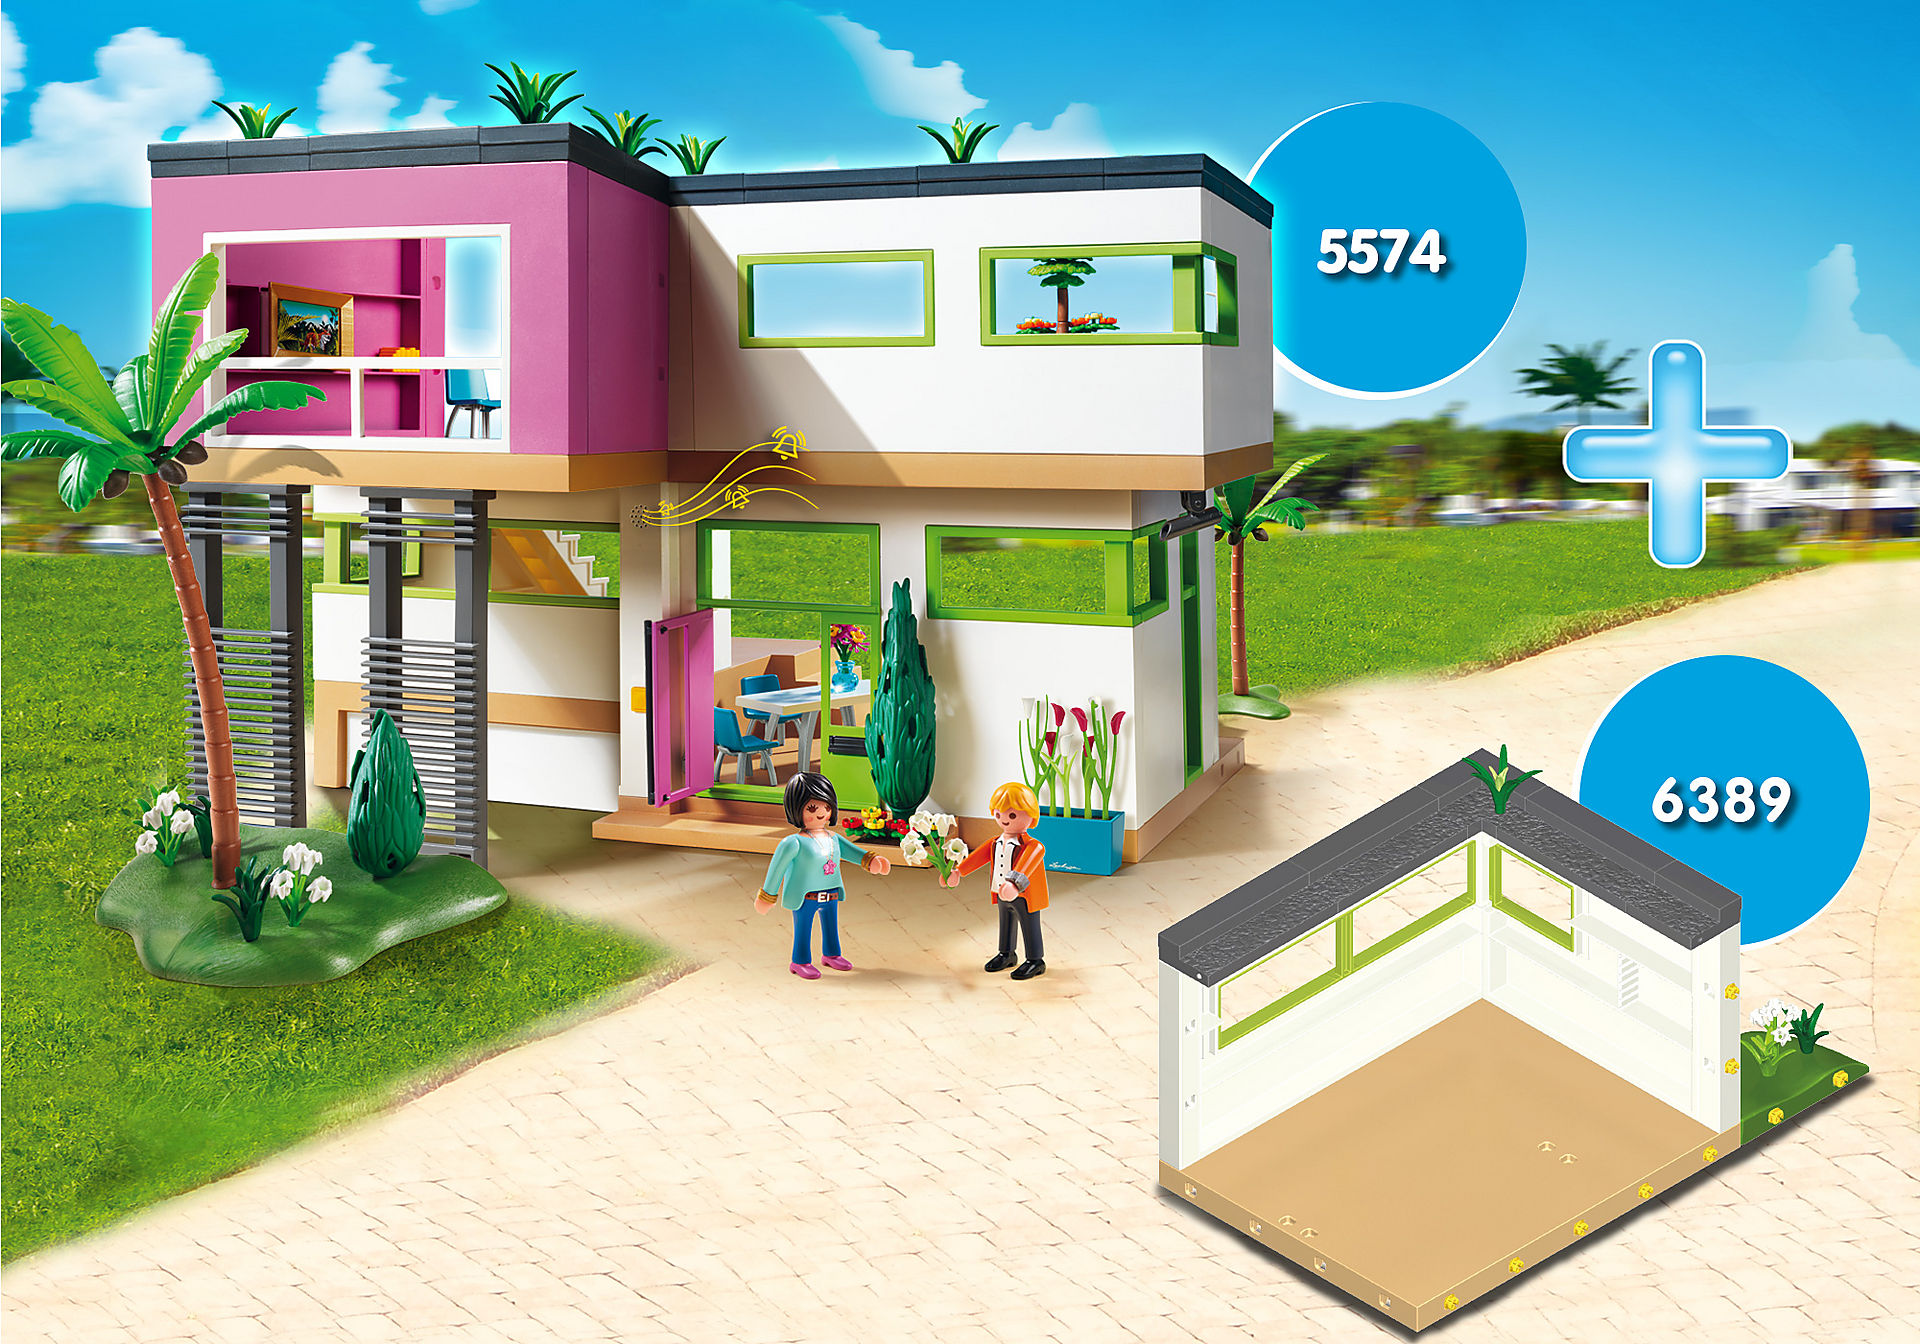 http://media.playmobil.com/i/playmobil/PM1905K_product_detail/Bundle Luxusvilla (DS Exklusiv)